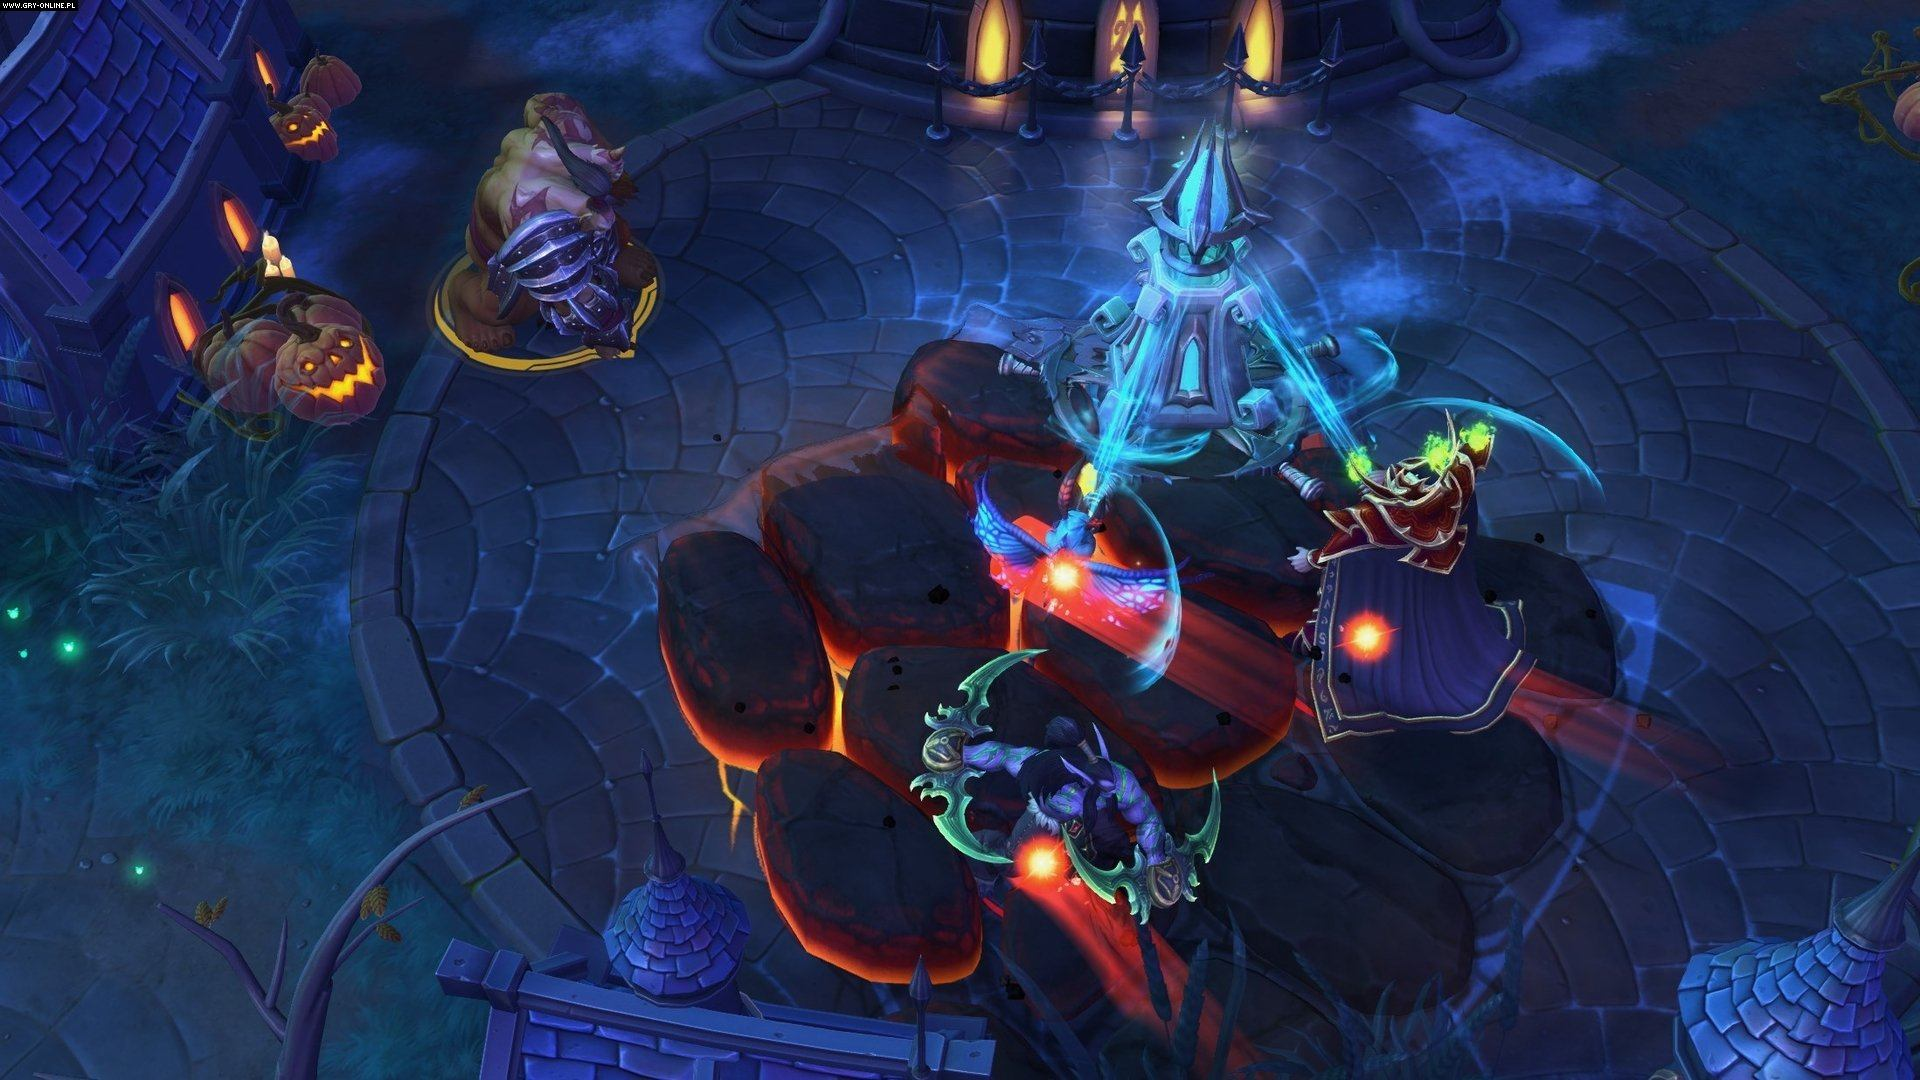 Heroes of the Storm image #7